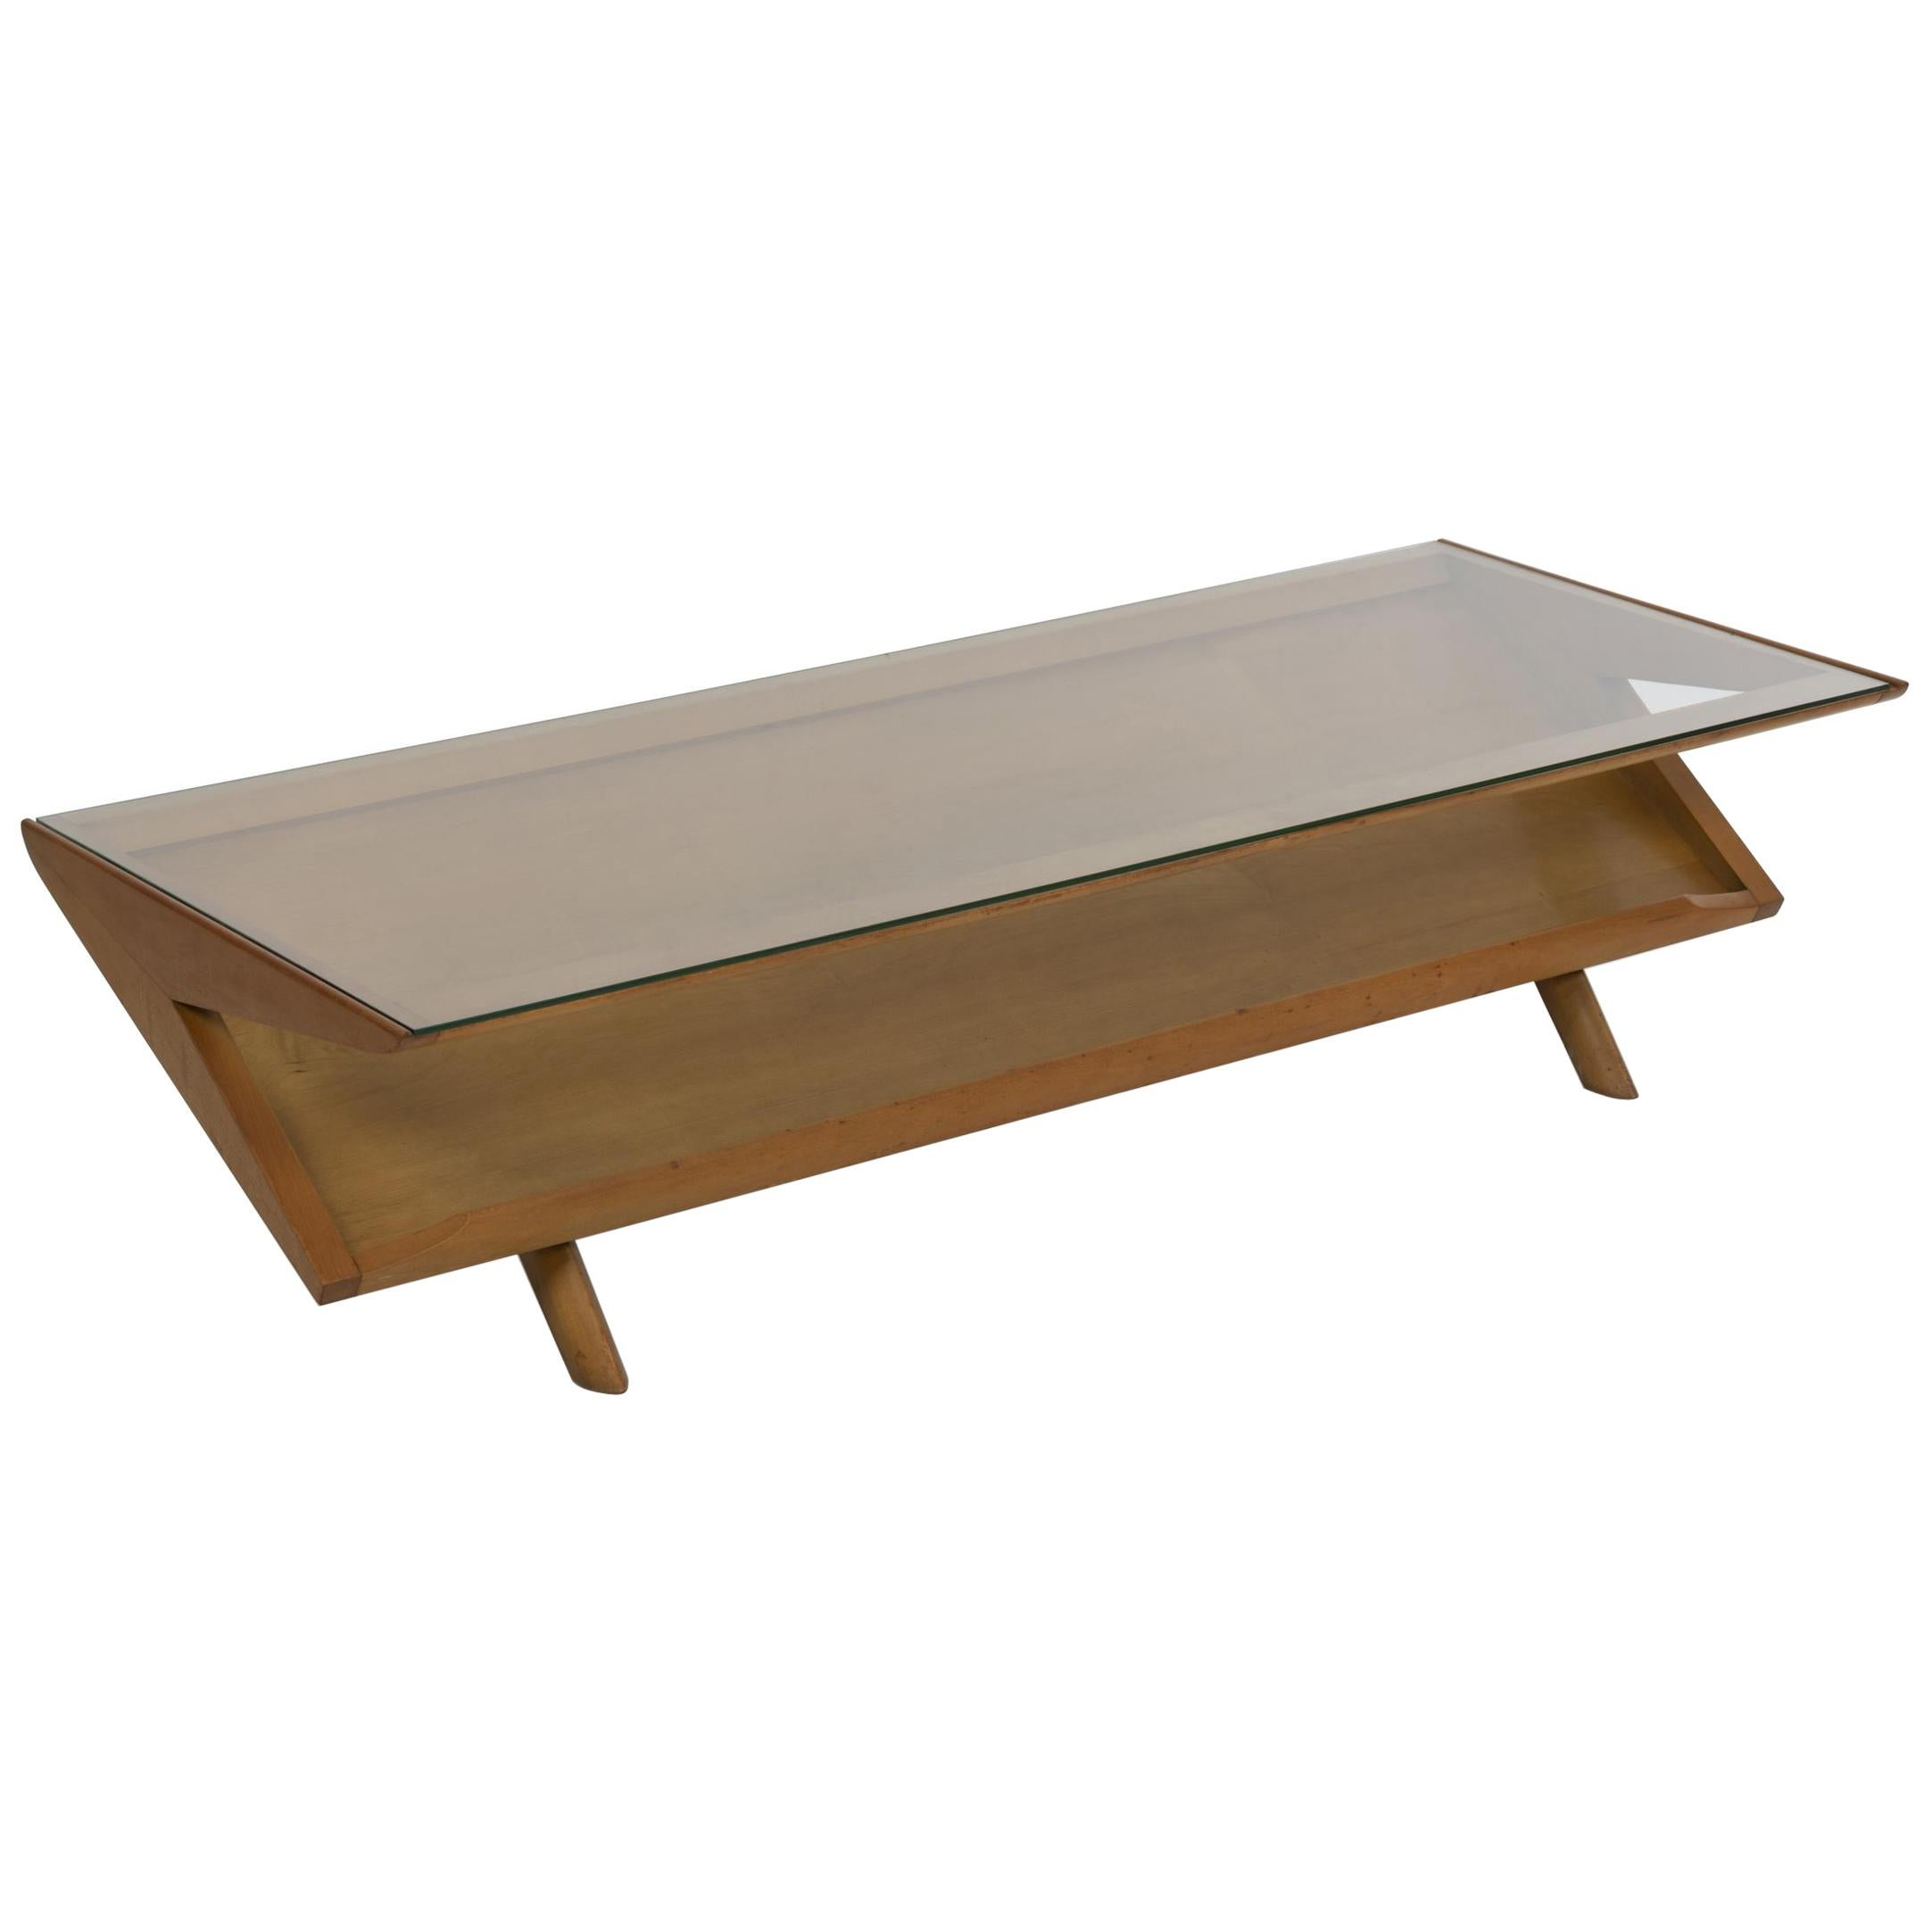 Paul Laszlo for Brown and Saltman Display Coffee Table